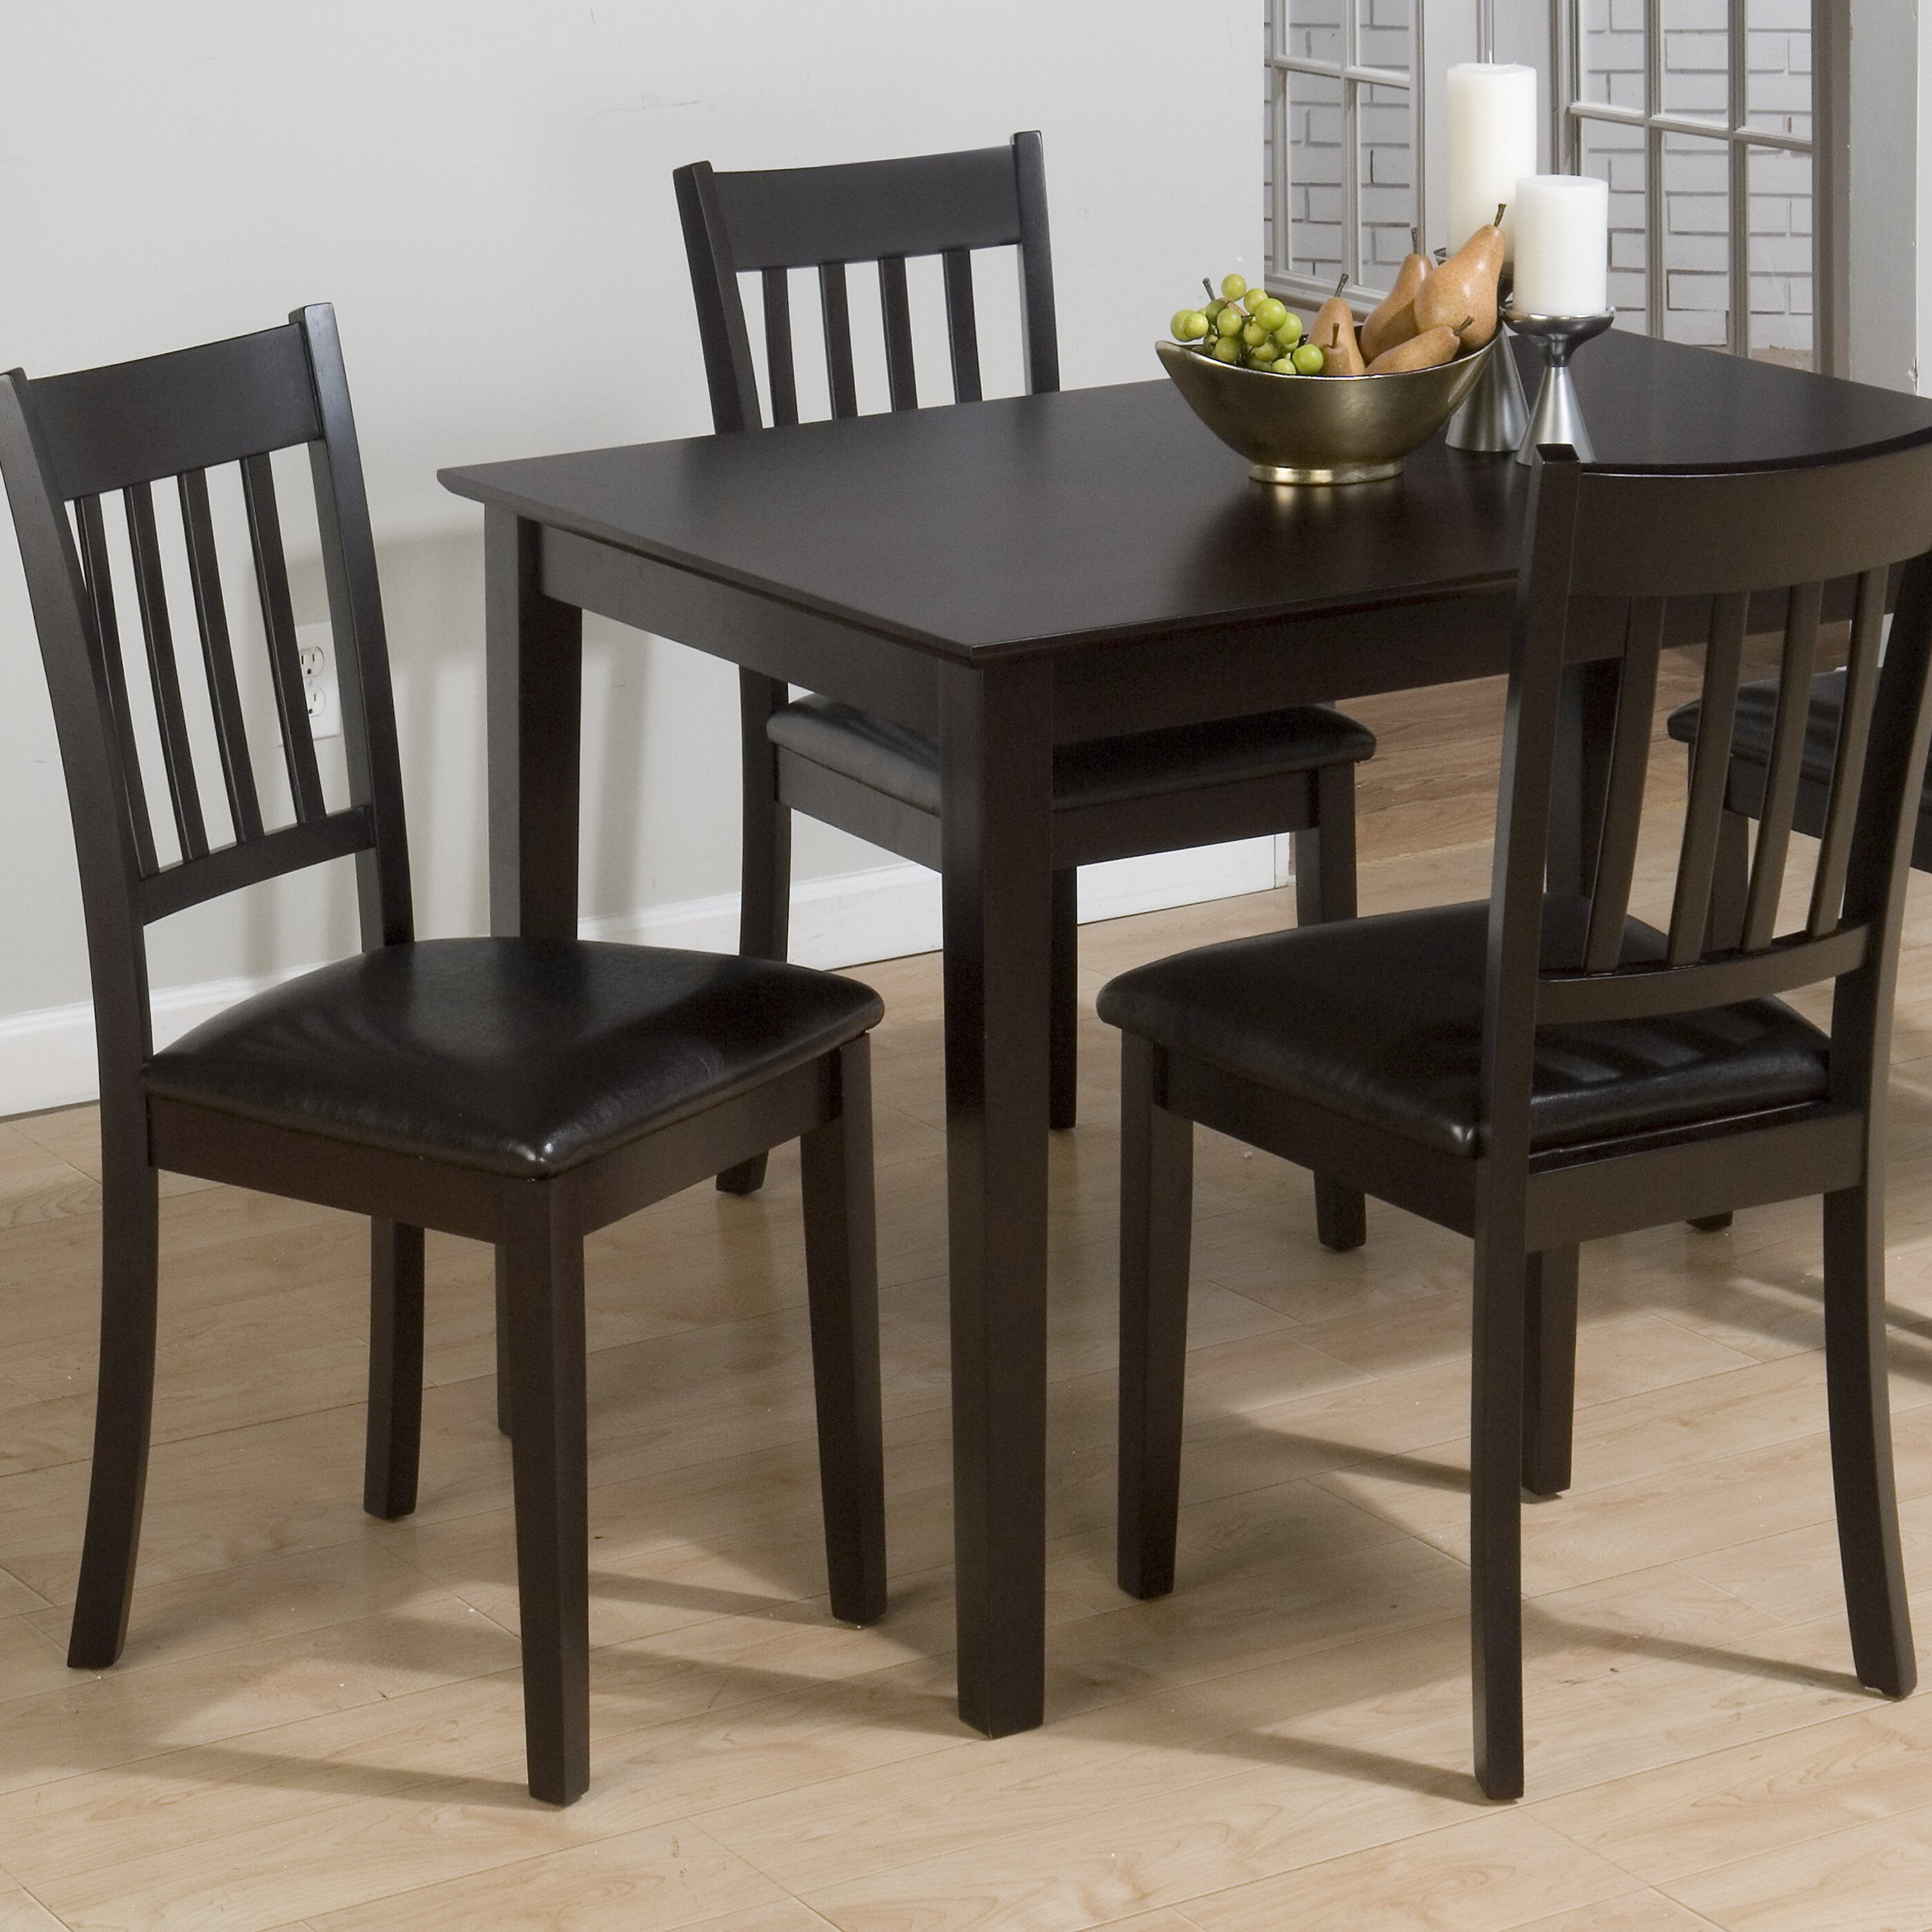 Country Dining Table Sets: Jofran Marin Country Merlot 5 Piece Dining Table Set